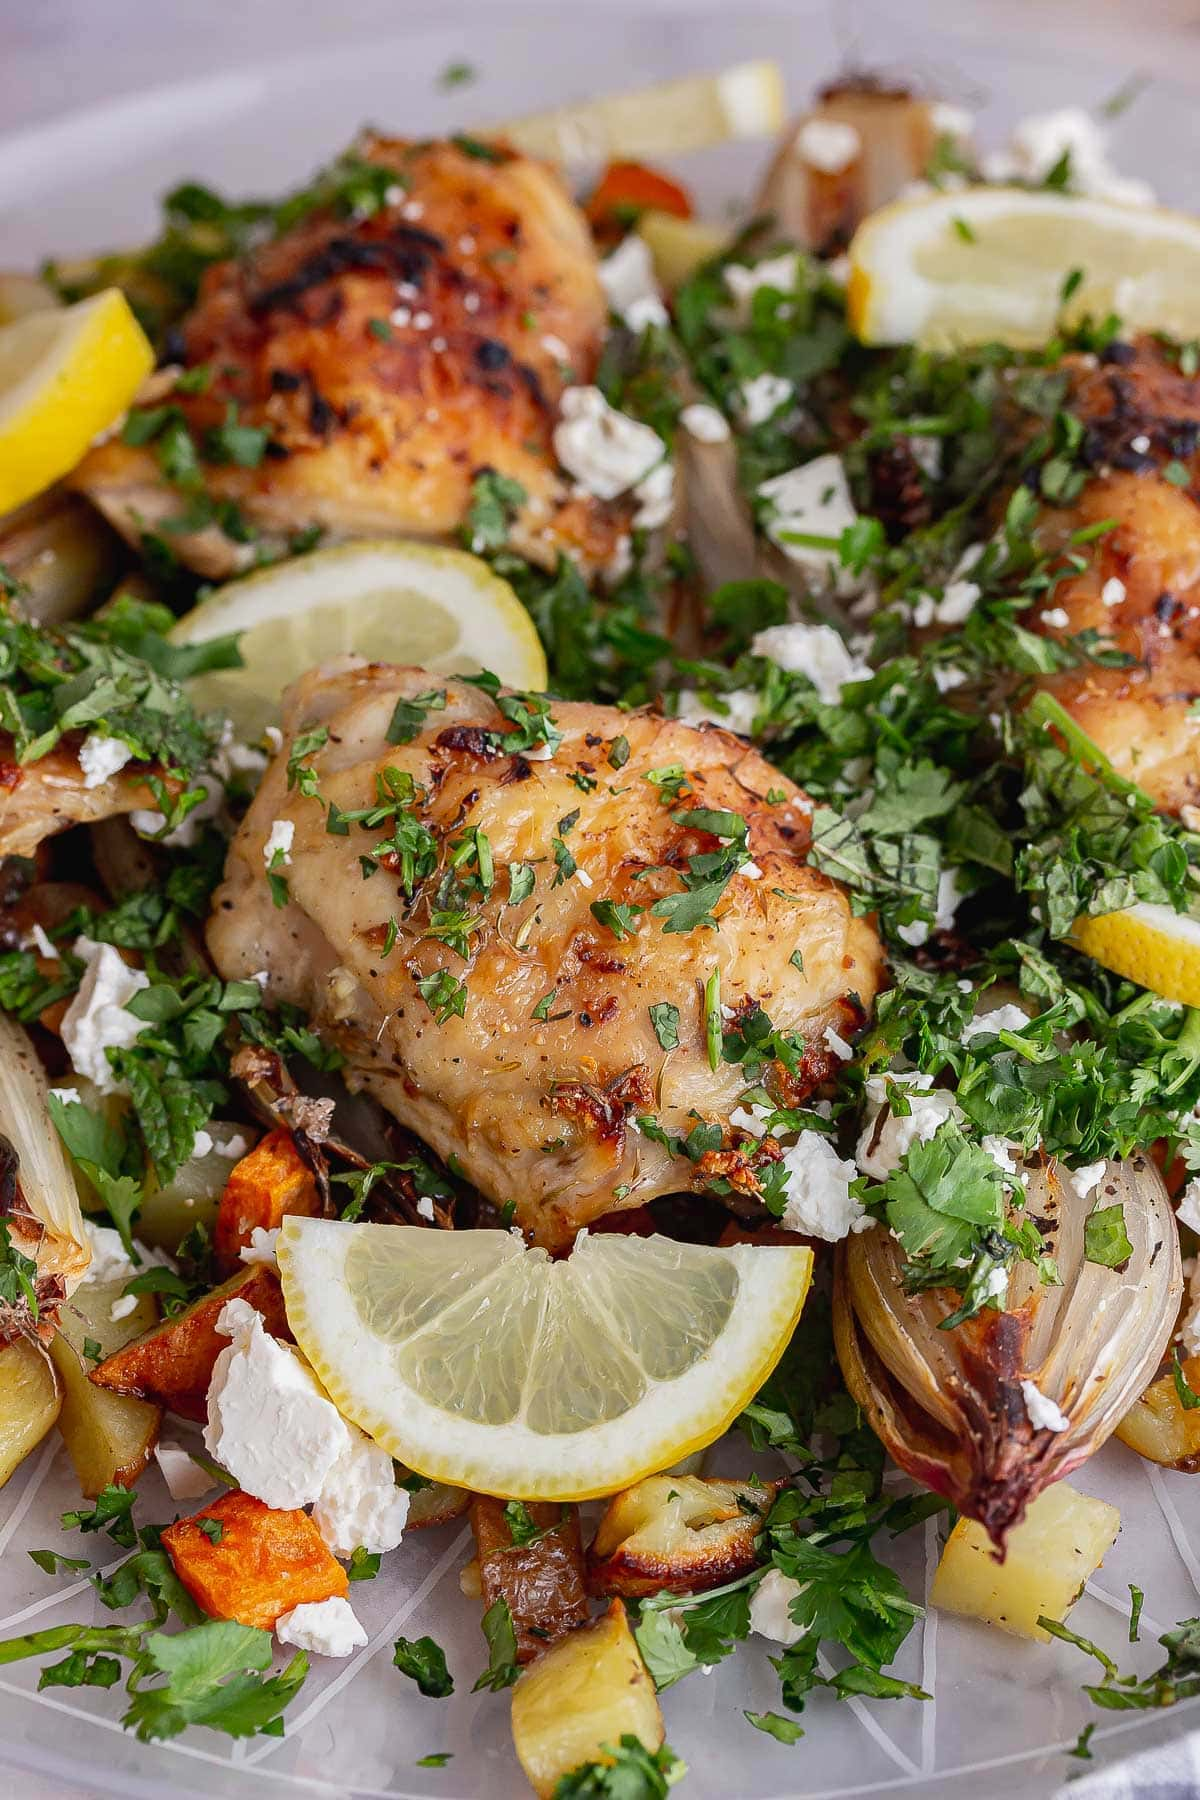 Chicken topped with lemon slices and herbs